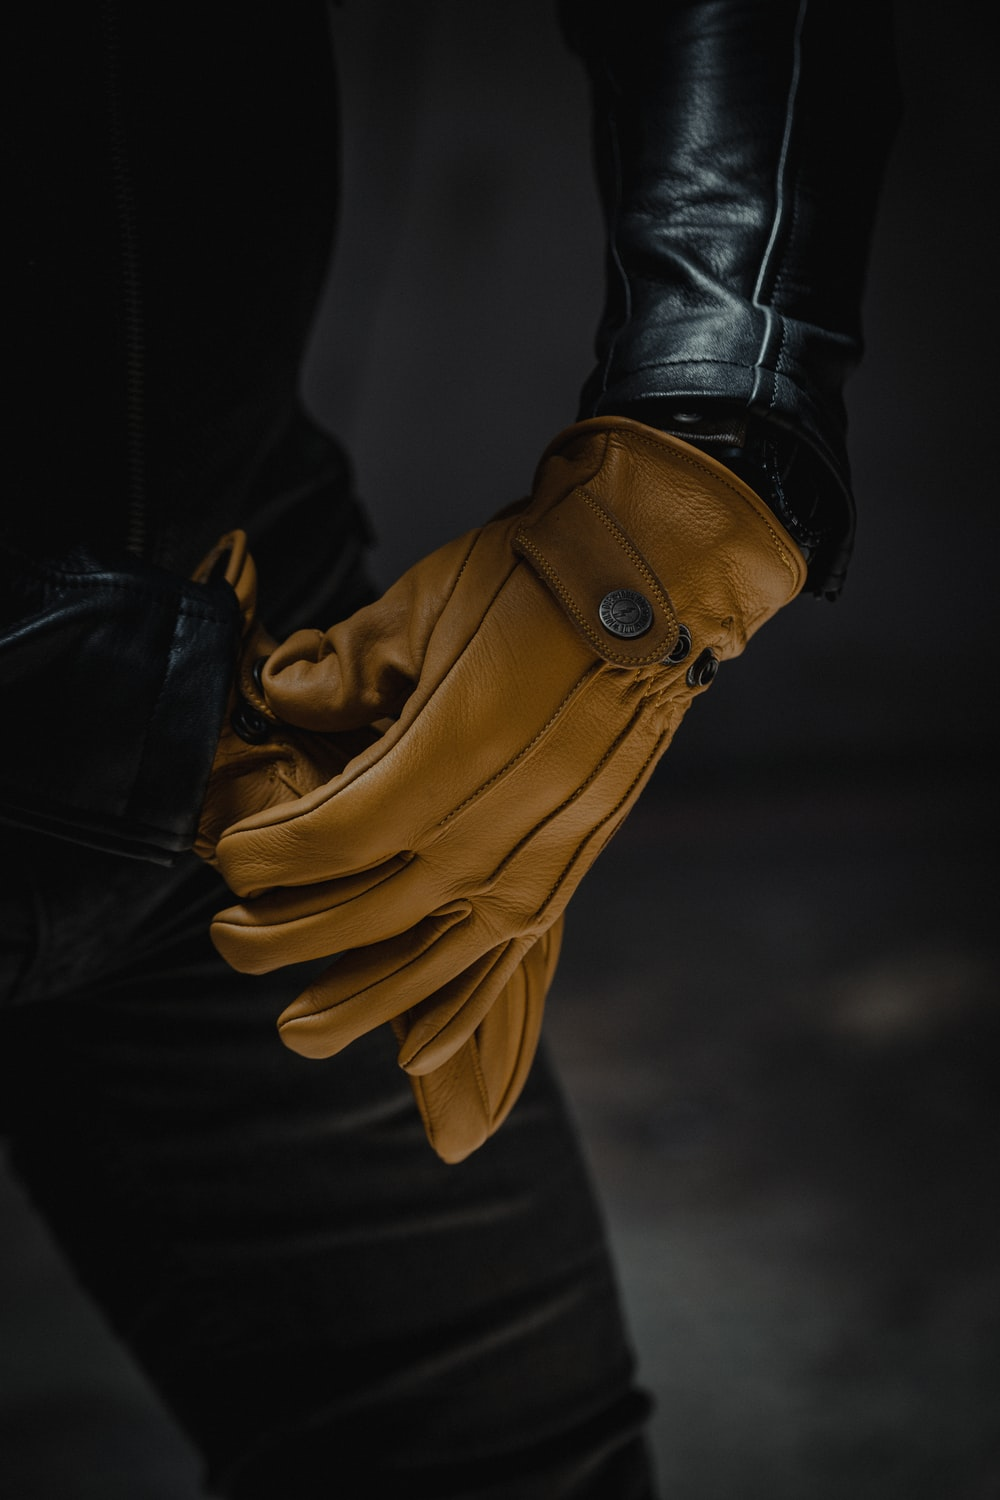 person wearing black leather gloves